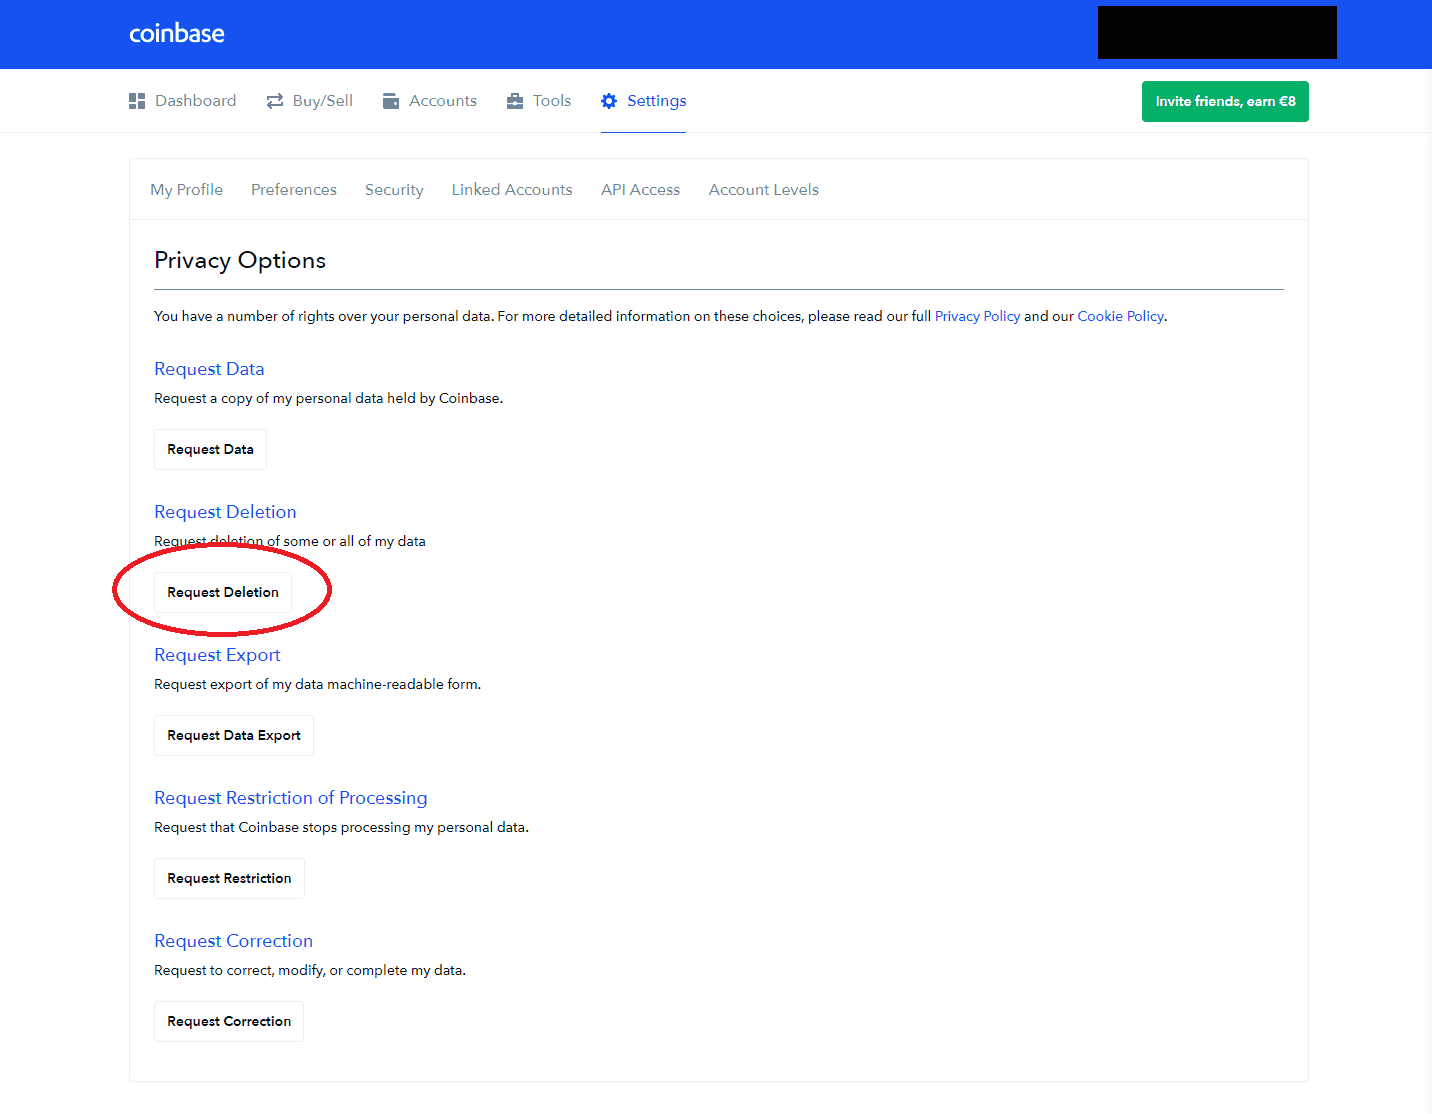 coinbase 4 deleting personal information